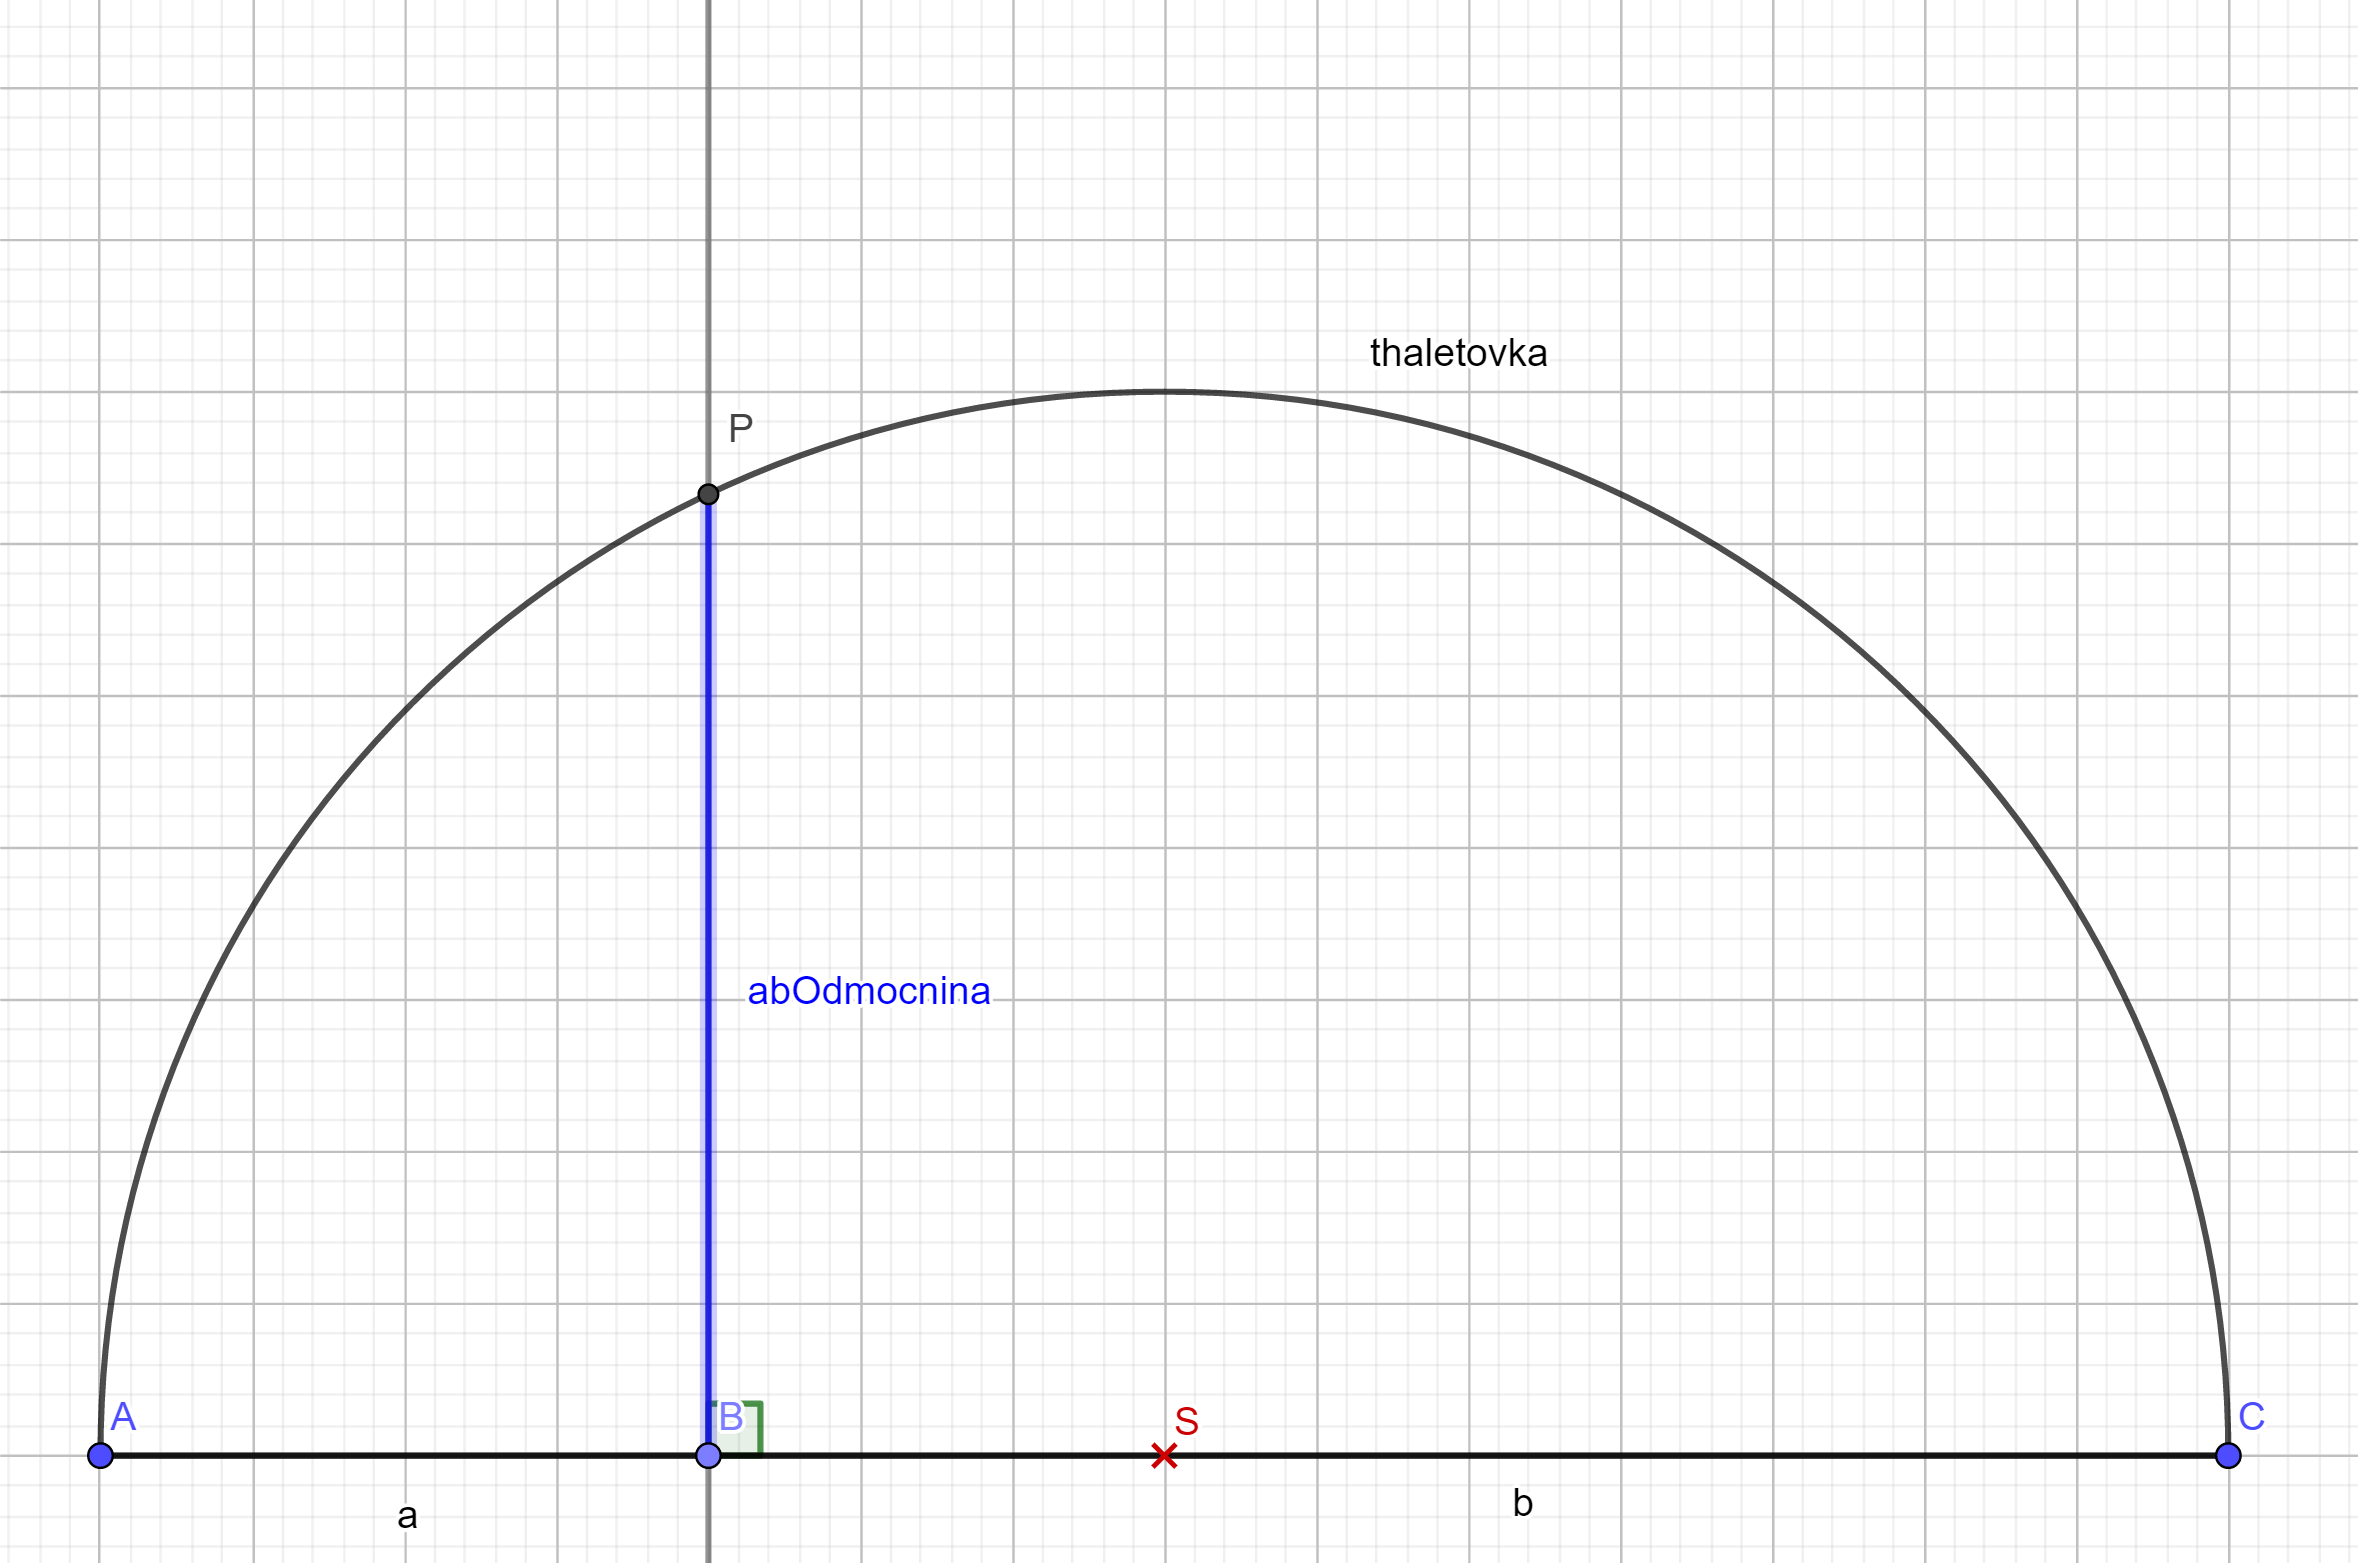 //forum.matematika.cz/upload3/img/2019-02/61226_geogebra-export.png